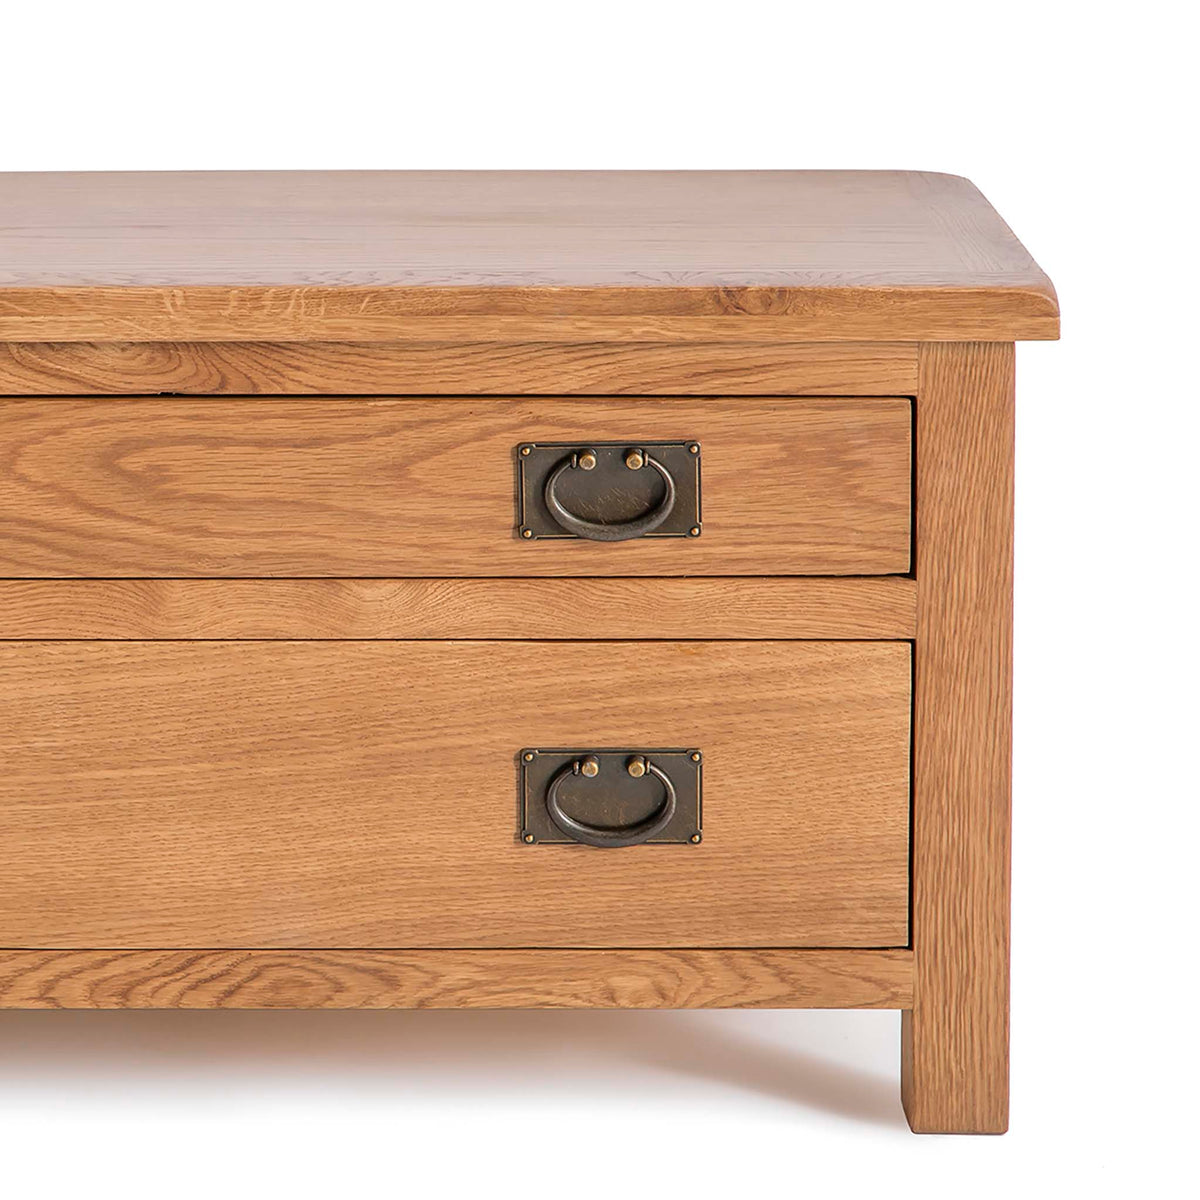 Surrey Oak 85cm TV Stand with Drawers - Close up of front of TV Stand